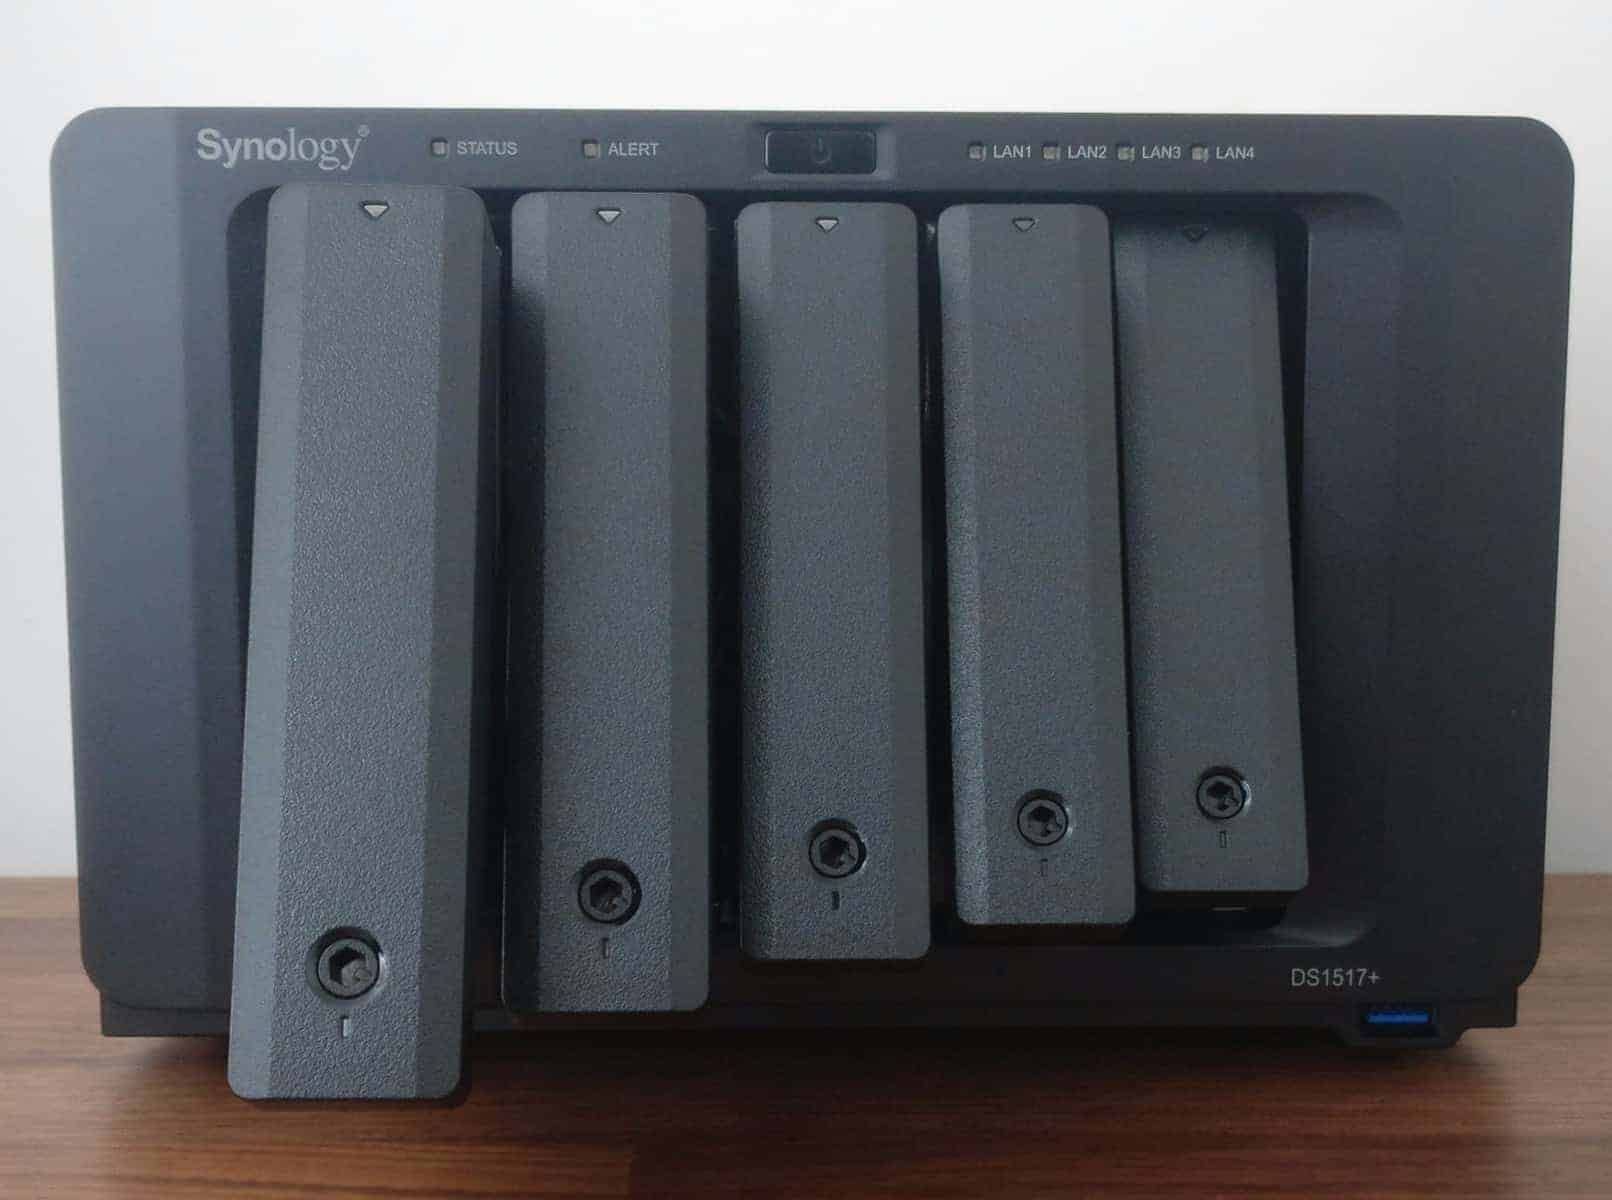 Synology-DS1517-Screens36 Synology DS1517+ 5 Bay NAS Review